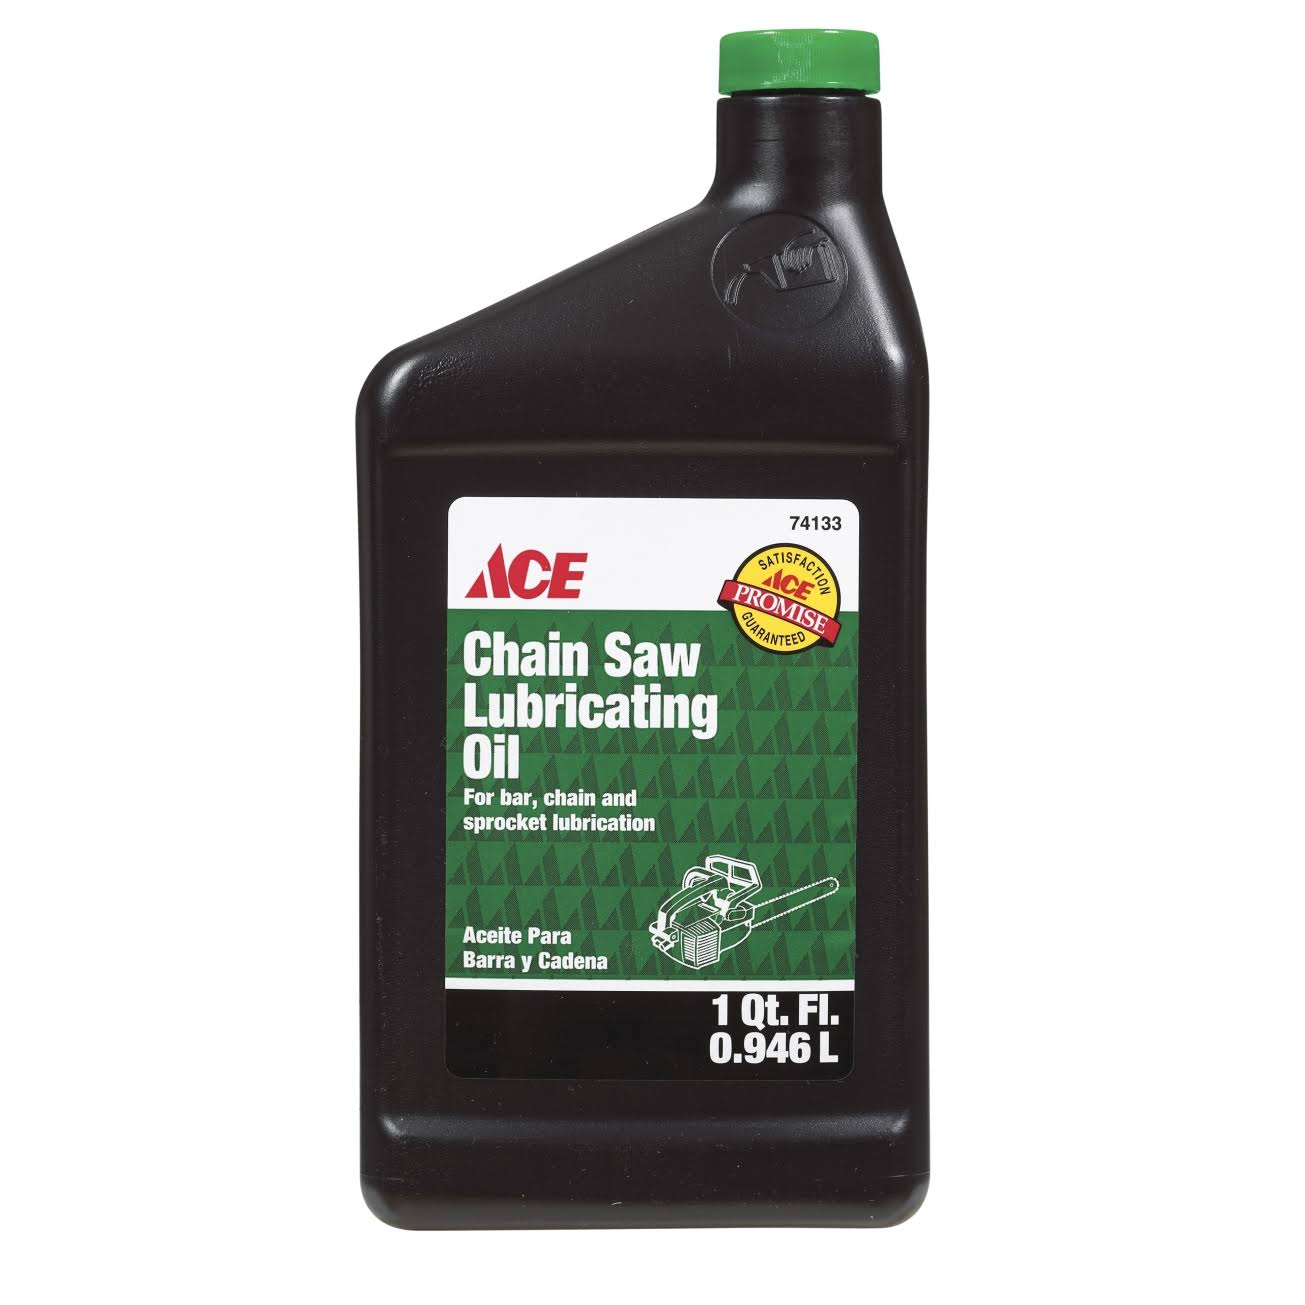 Ace Chain Saw Lubricating Oil - 1 qt